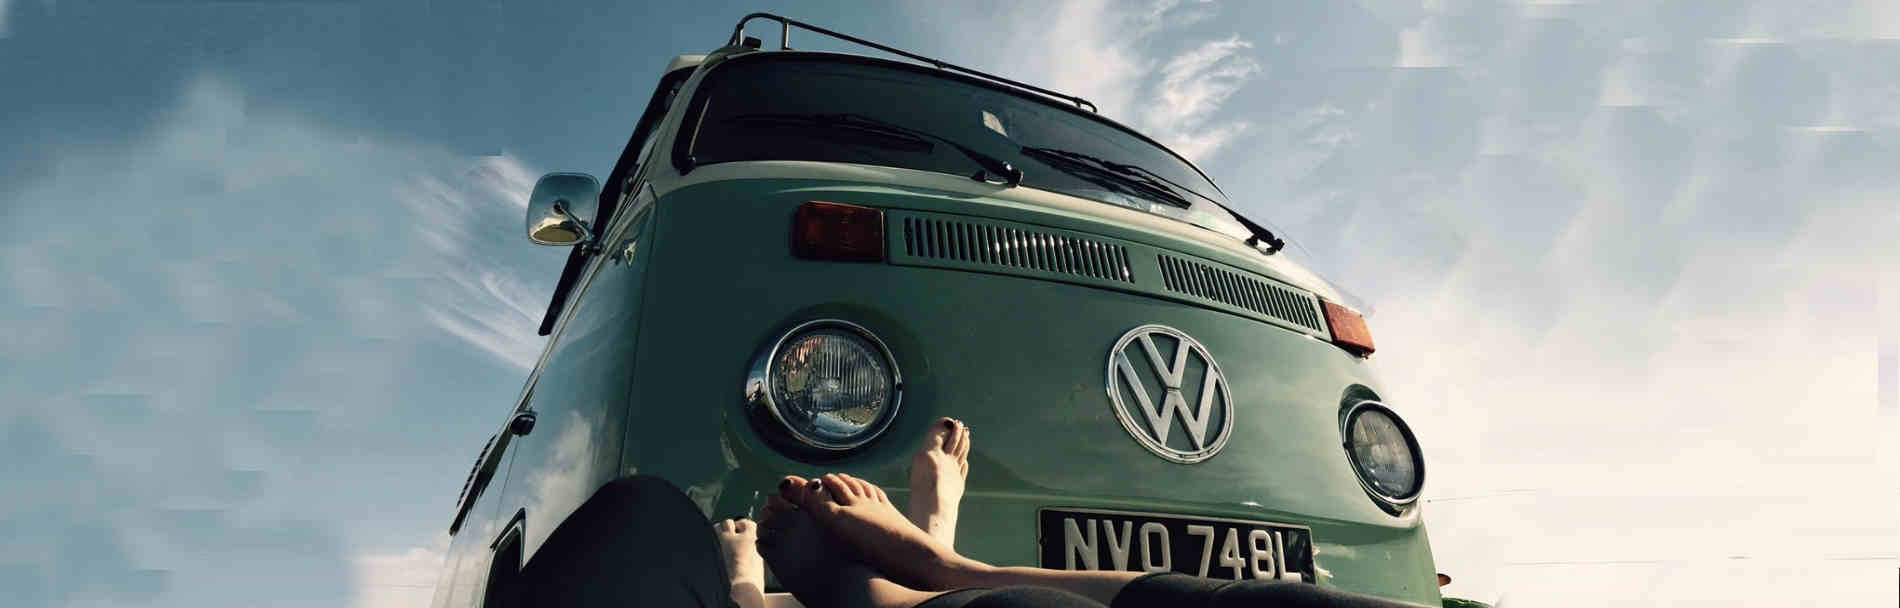 Self-drive classic campervan rental holidays London